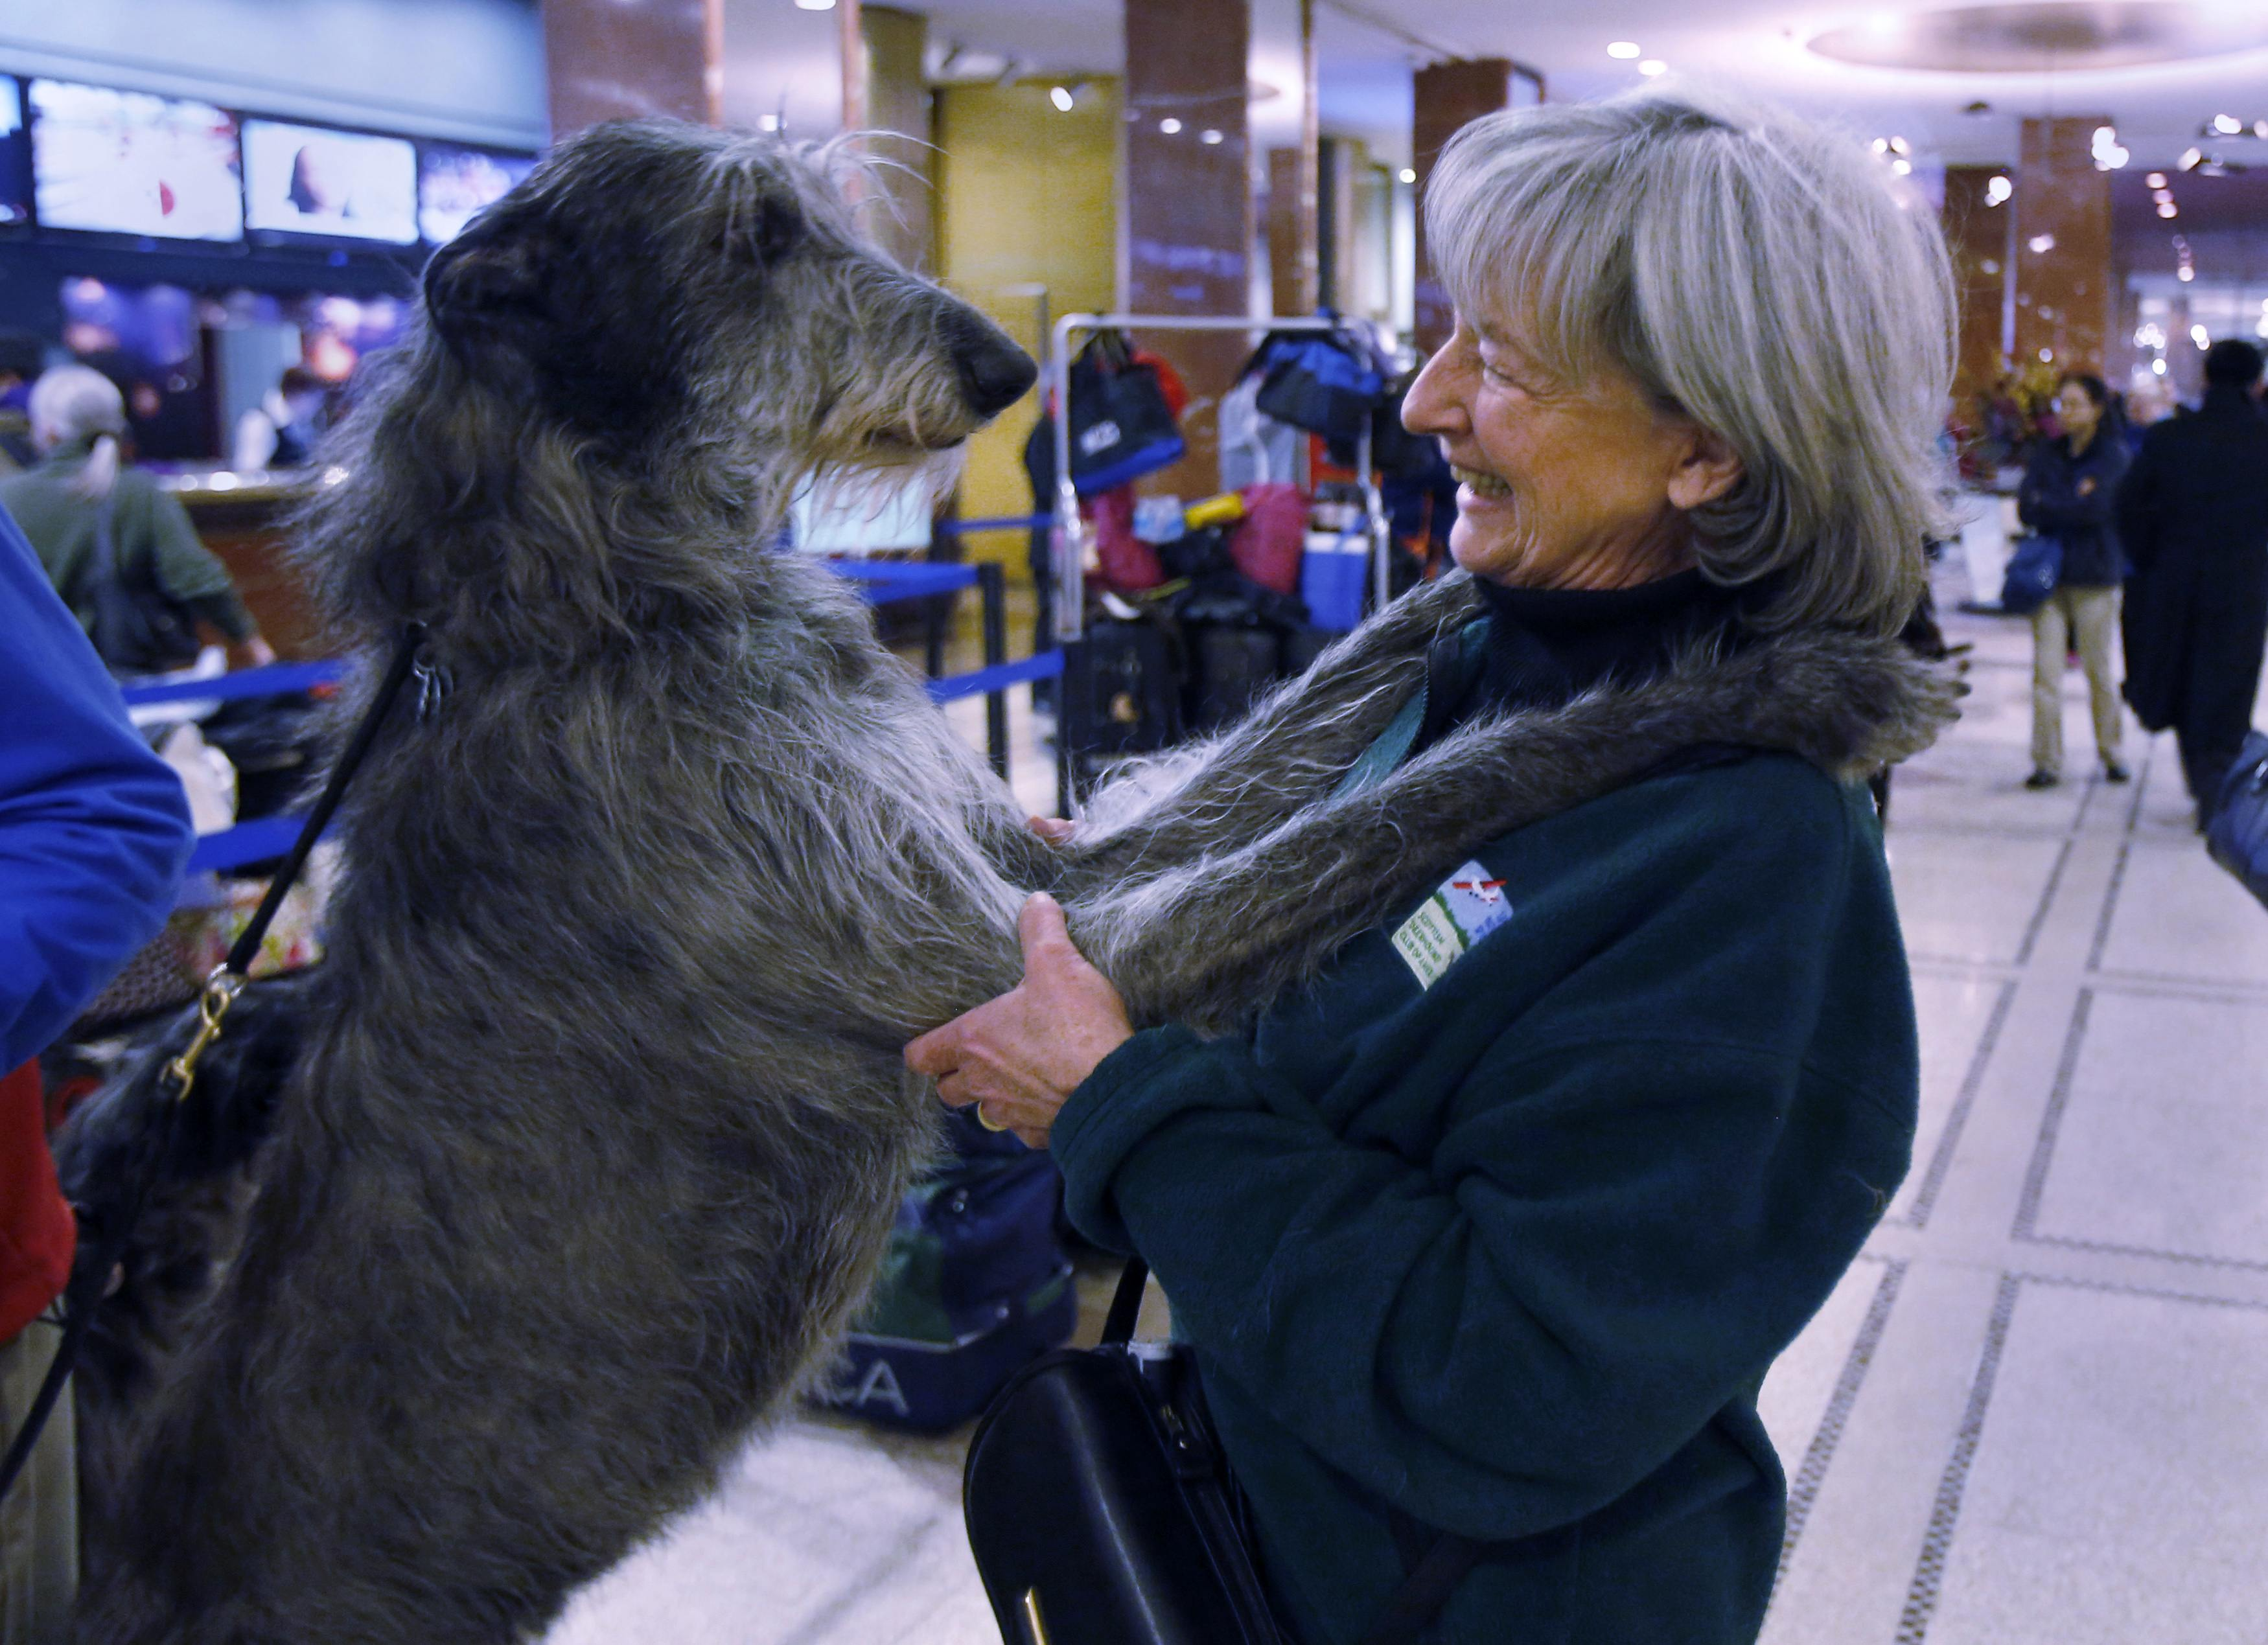 Chino, a Scottish Deer Hound, jumps up to greet his owner Ann Hammond as they wait for their room in the lobby of the Hotel Pennsylvania in advance of the Westminster Dog Show in New York. ? Reuters Photo